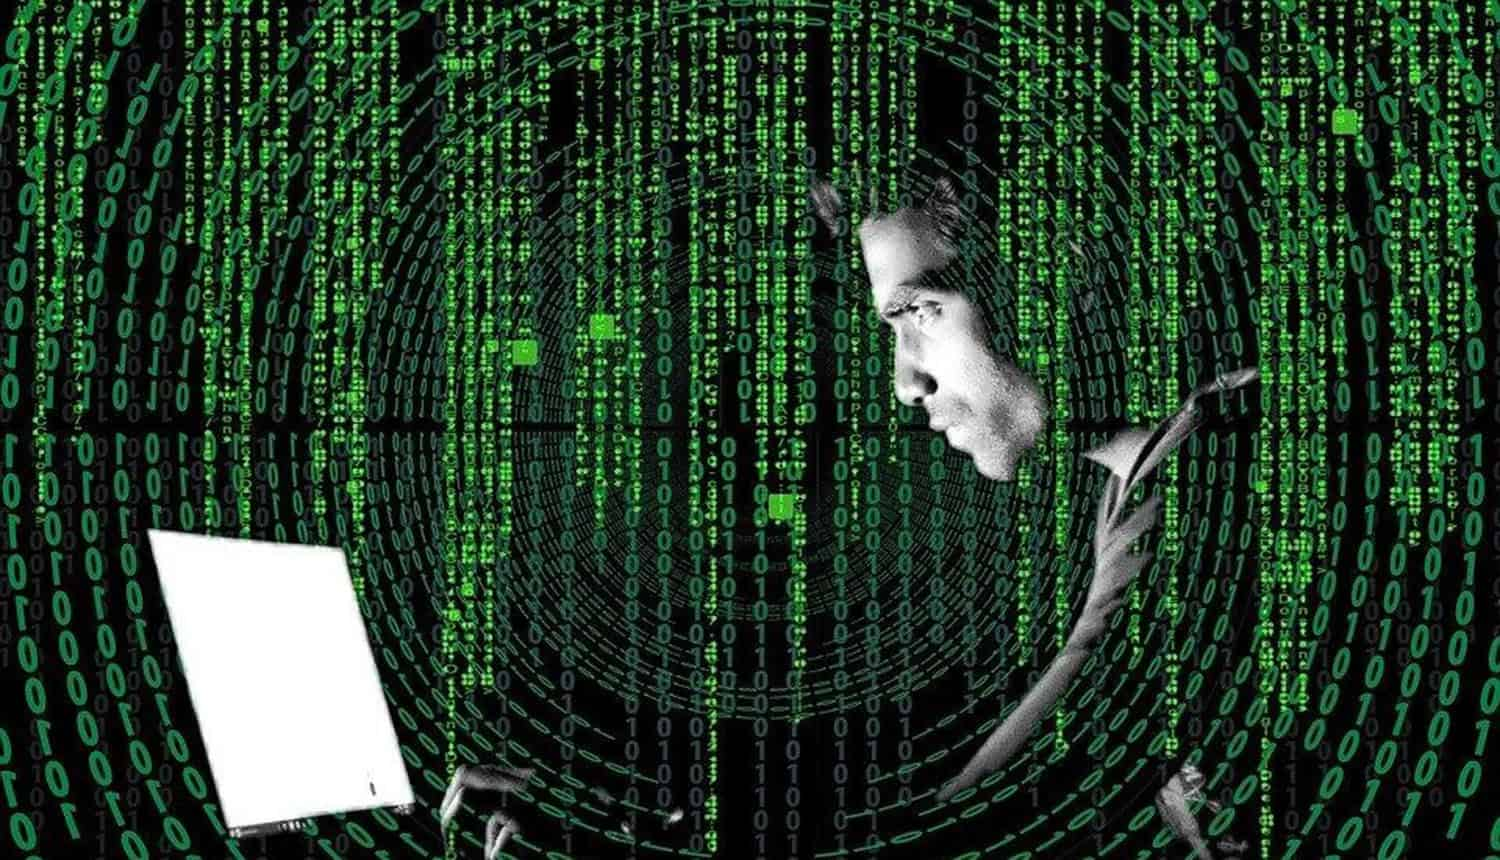 Hacker working on laptop showing need for data protection technologies